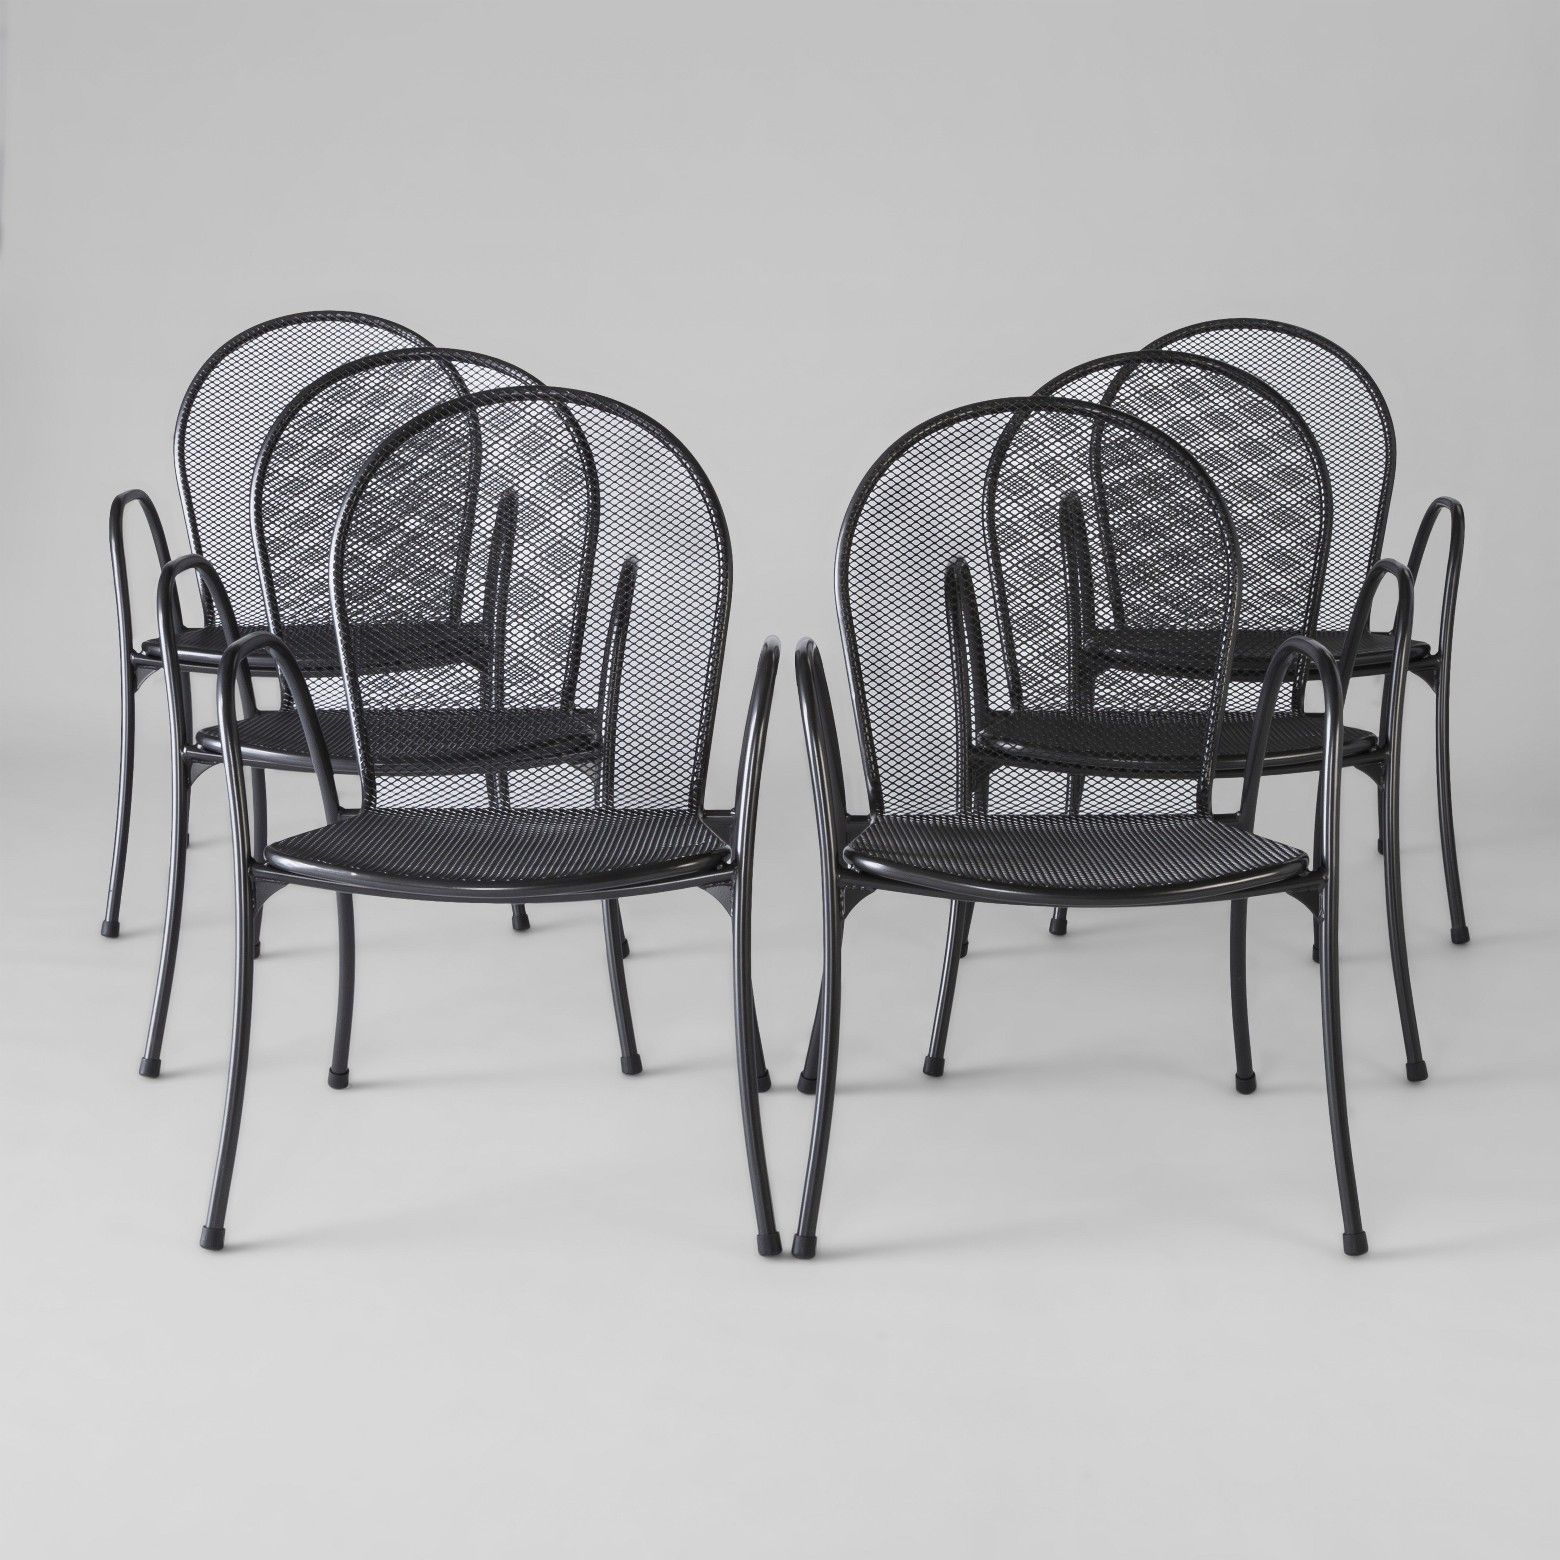 Carmack 6pk Mesh Patio Dining Chairs Black Threshold